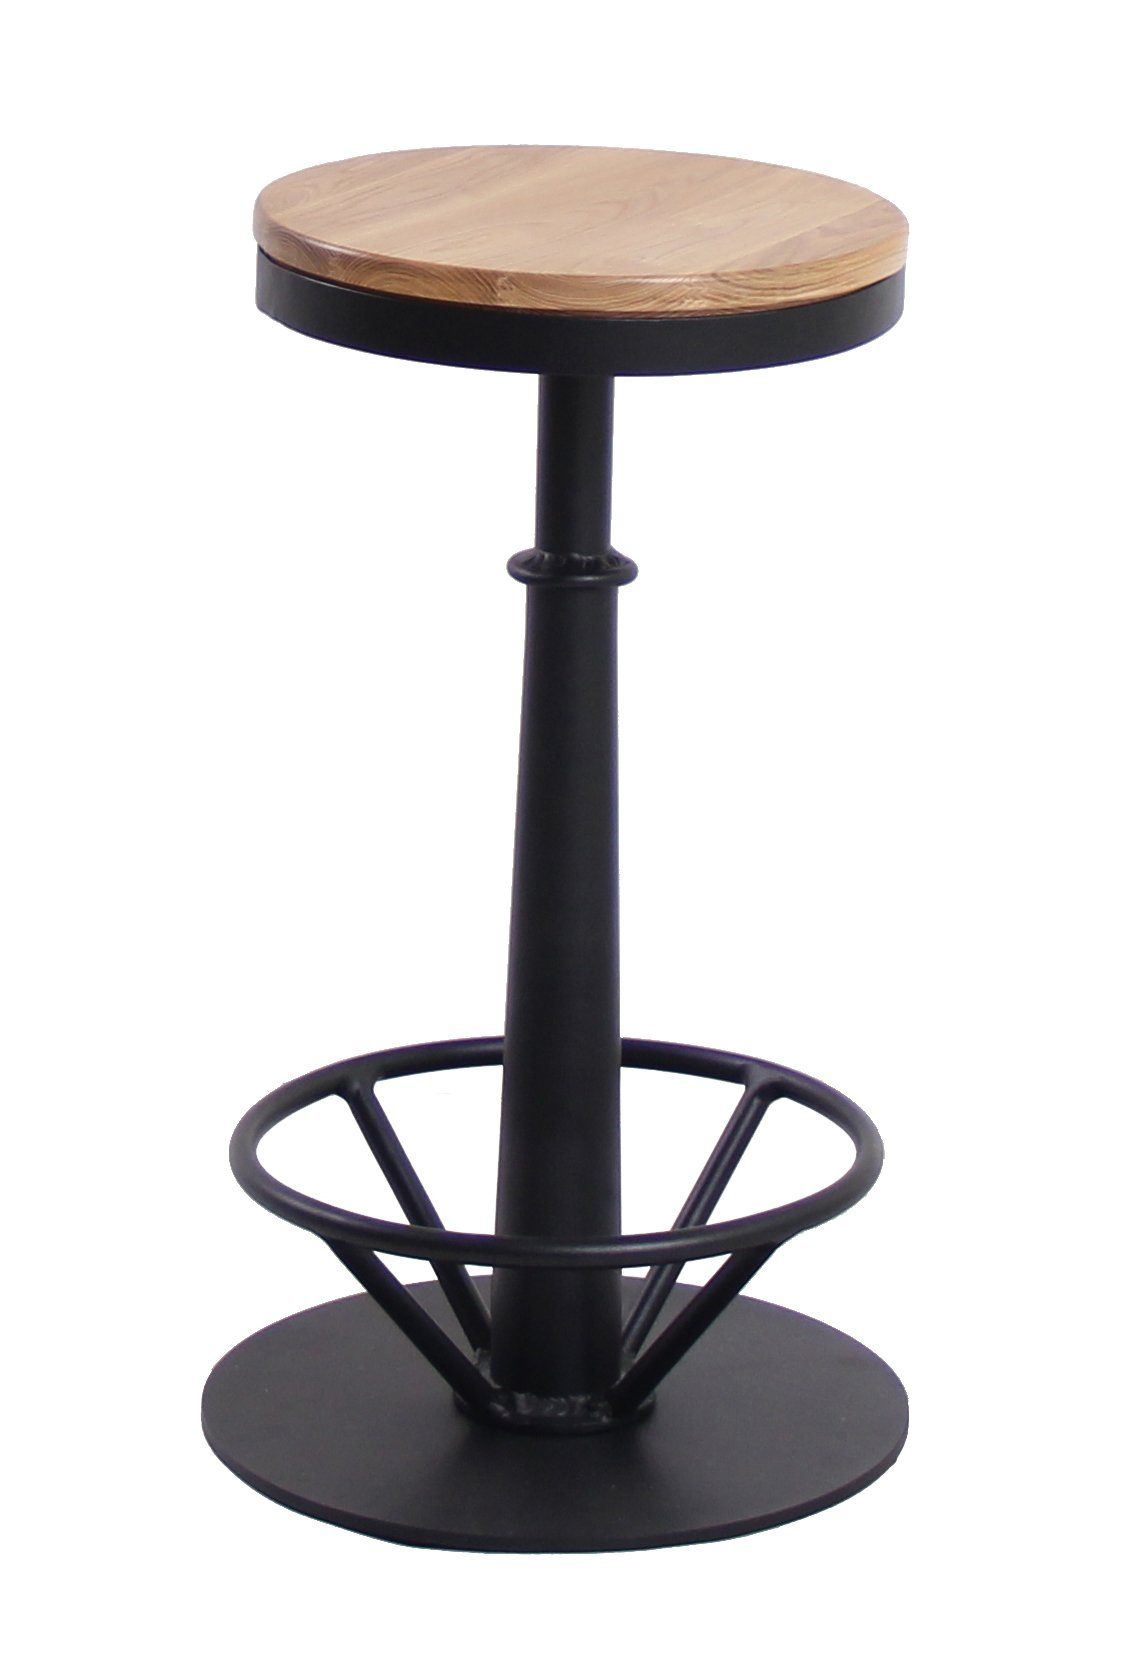 Classic Industrial Bar Stool | 360HomeWare